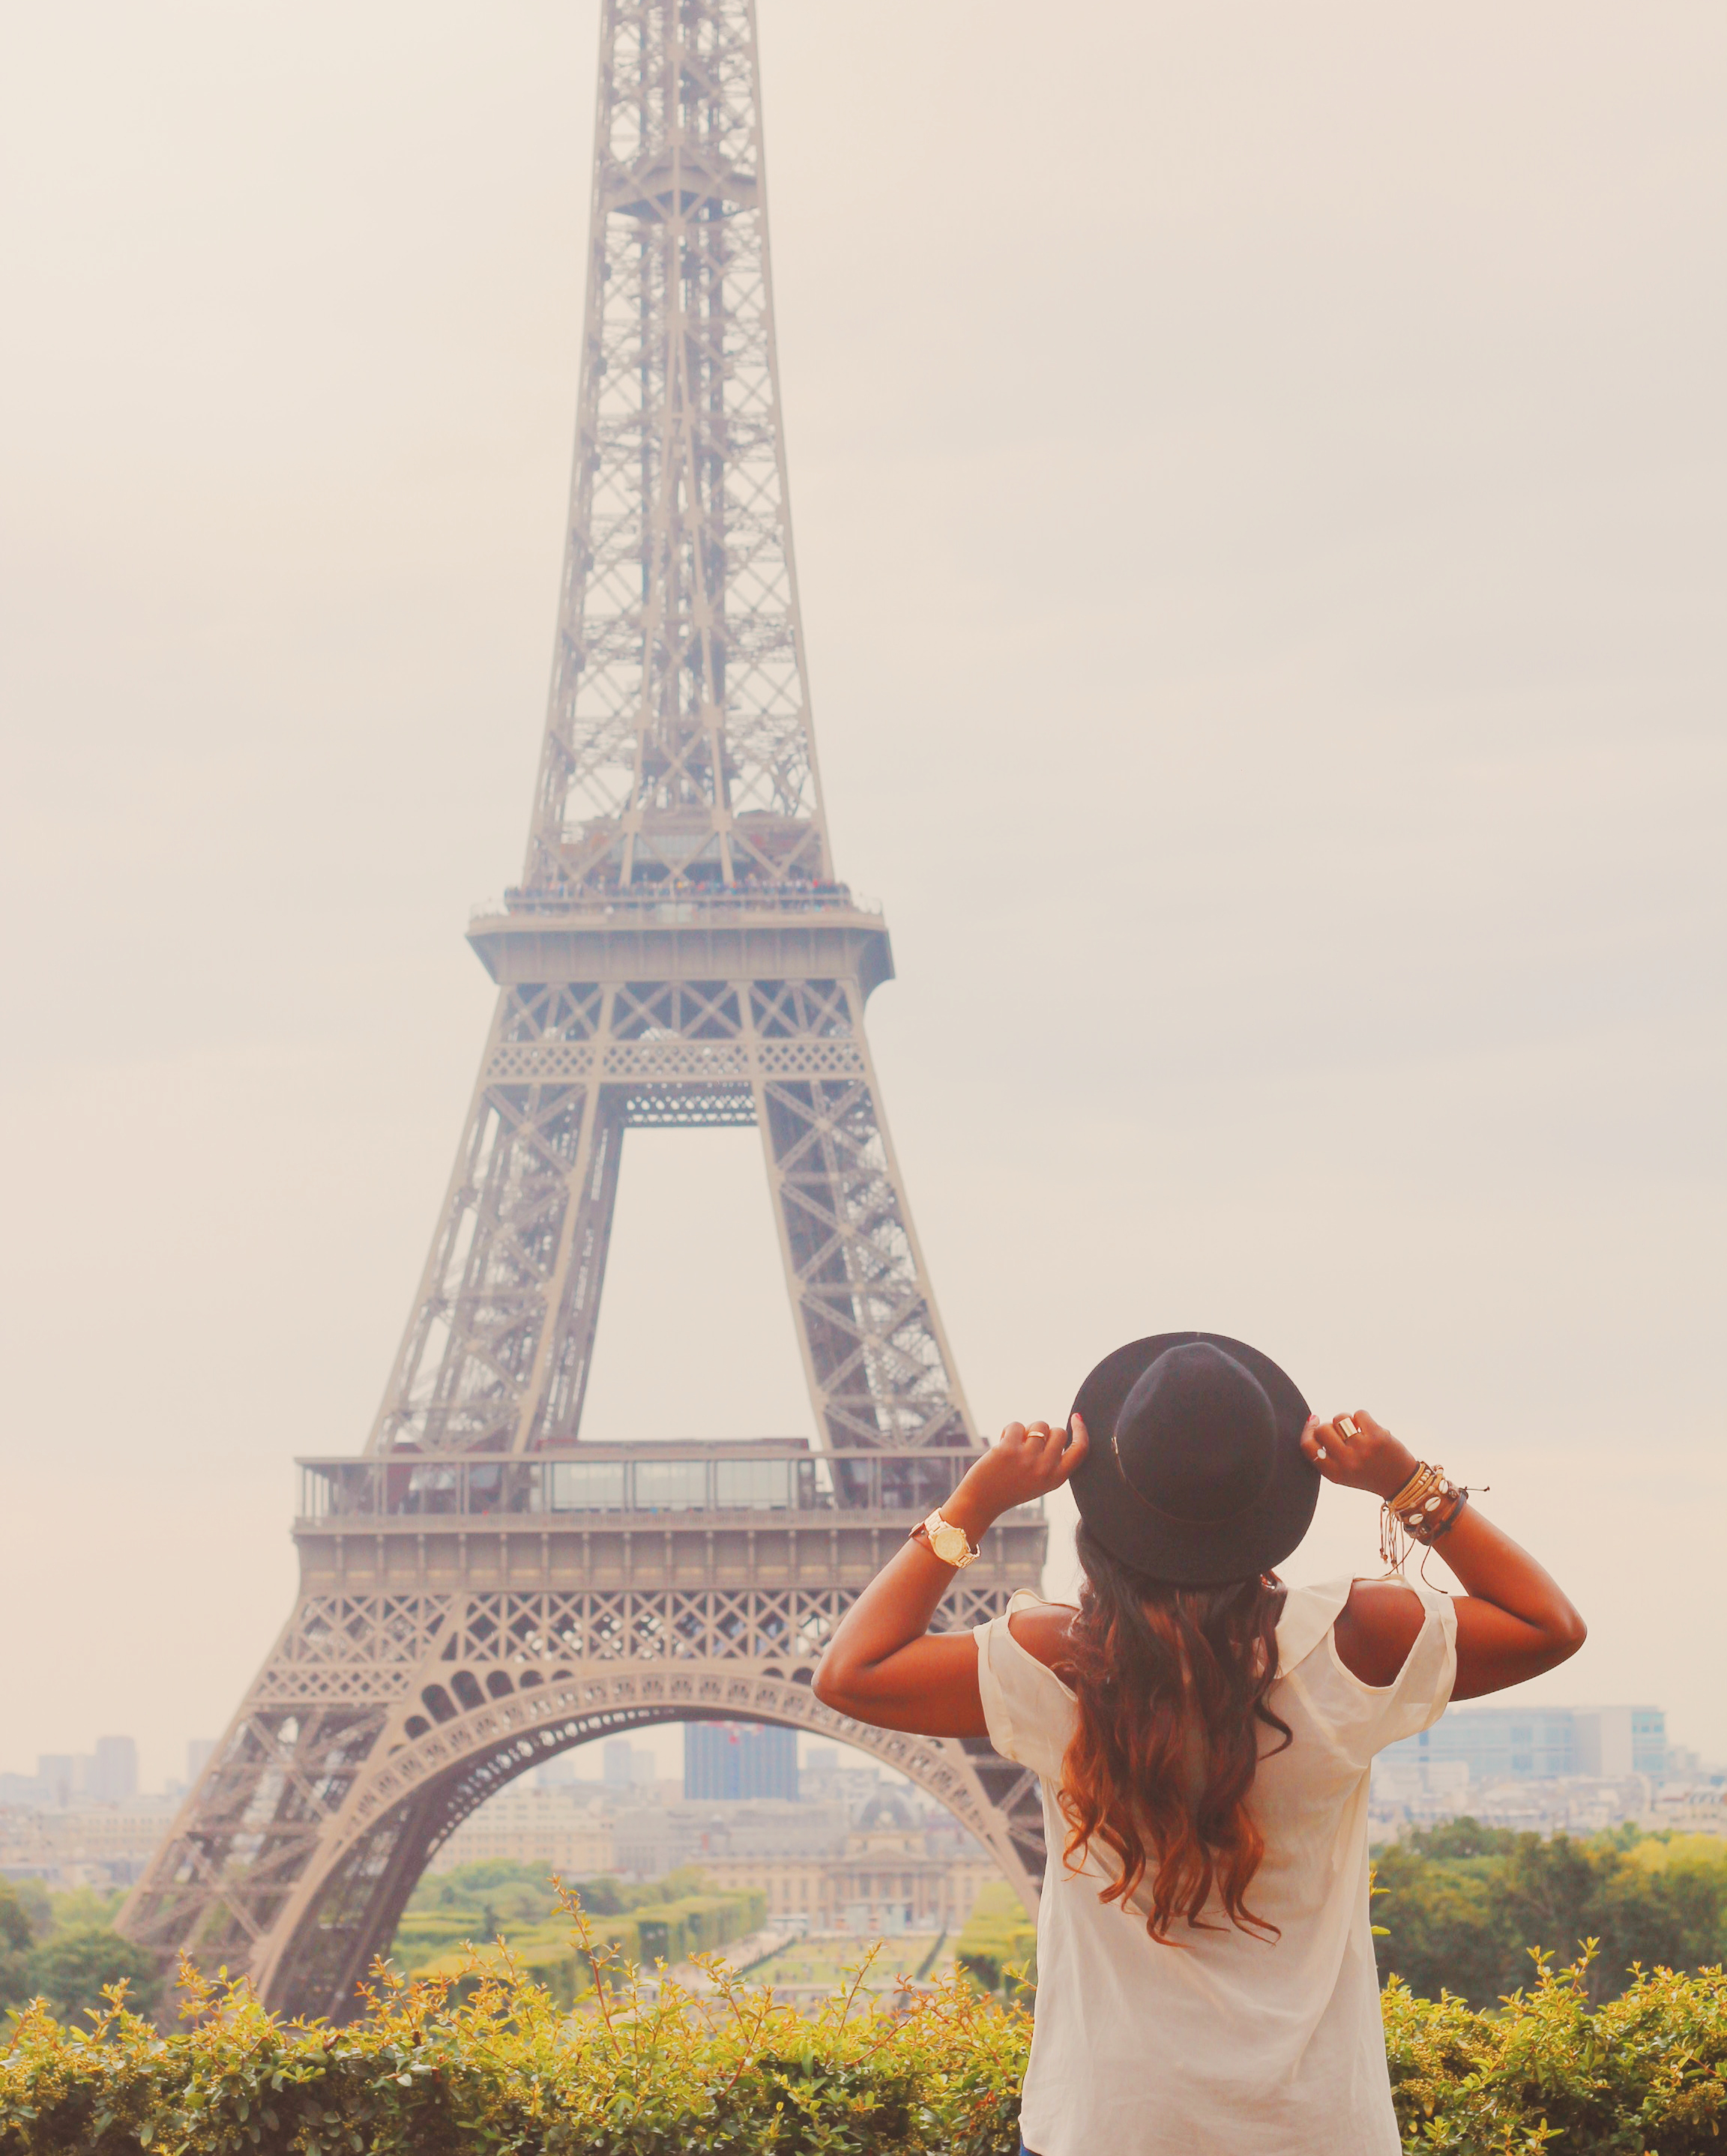 Glo by the Eiffel Tower, Paris